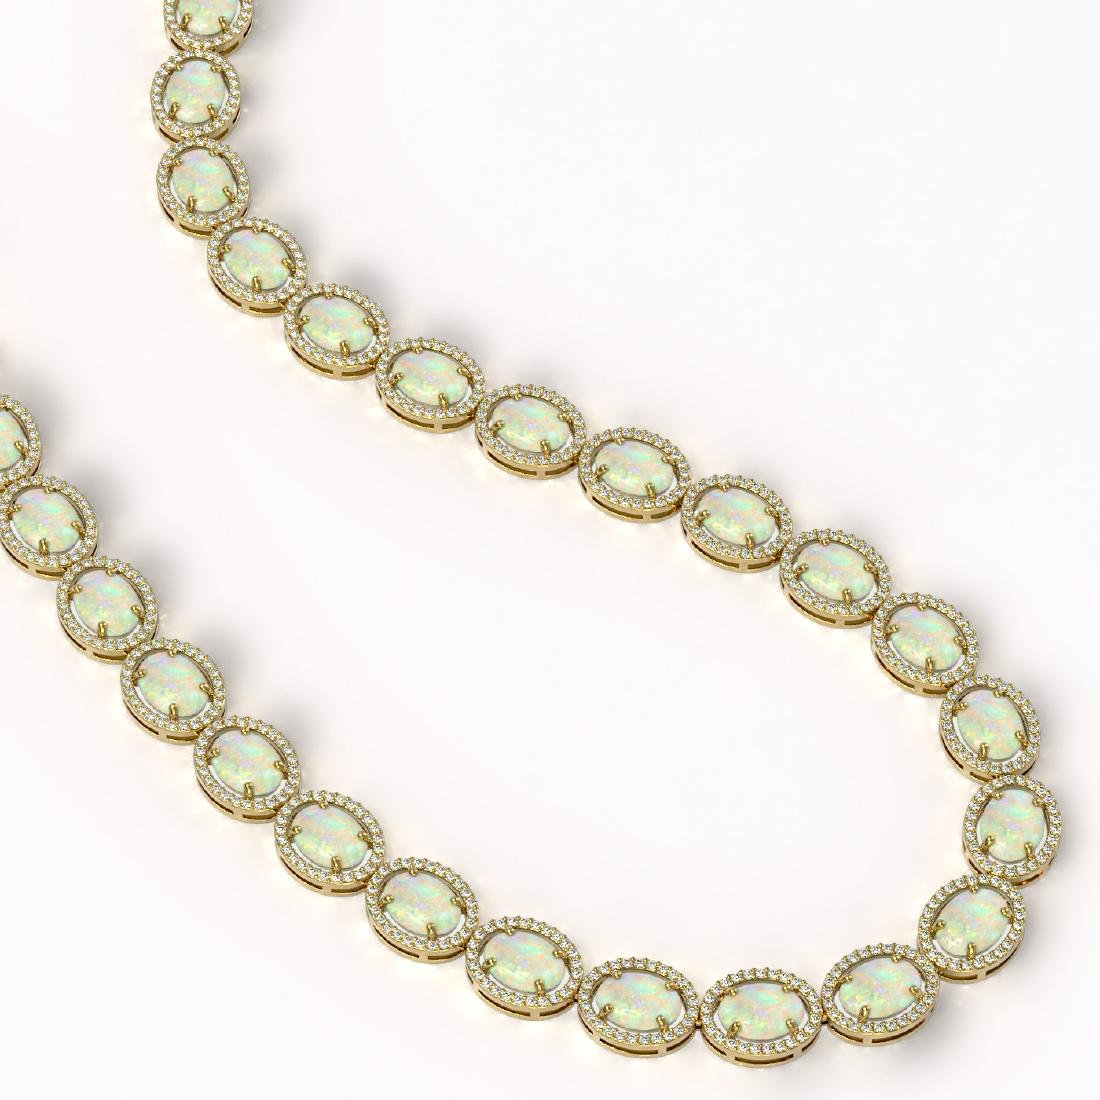 42.29 CTW Opal & Diamond Halo Necklace 10K Yellow Gold - 2